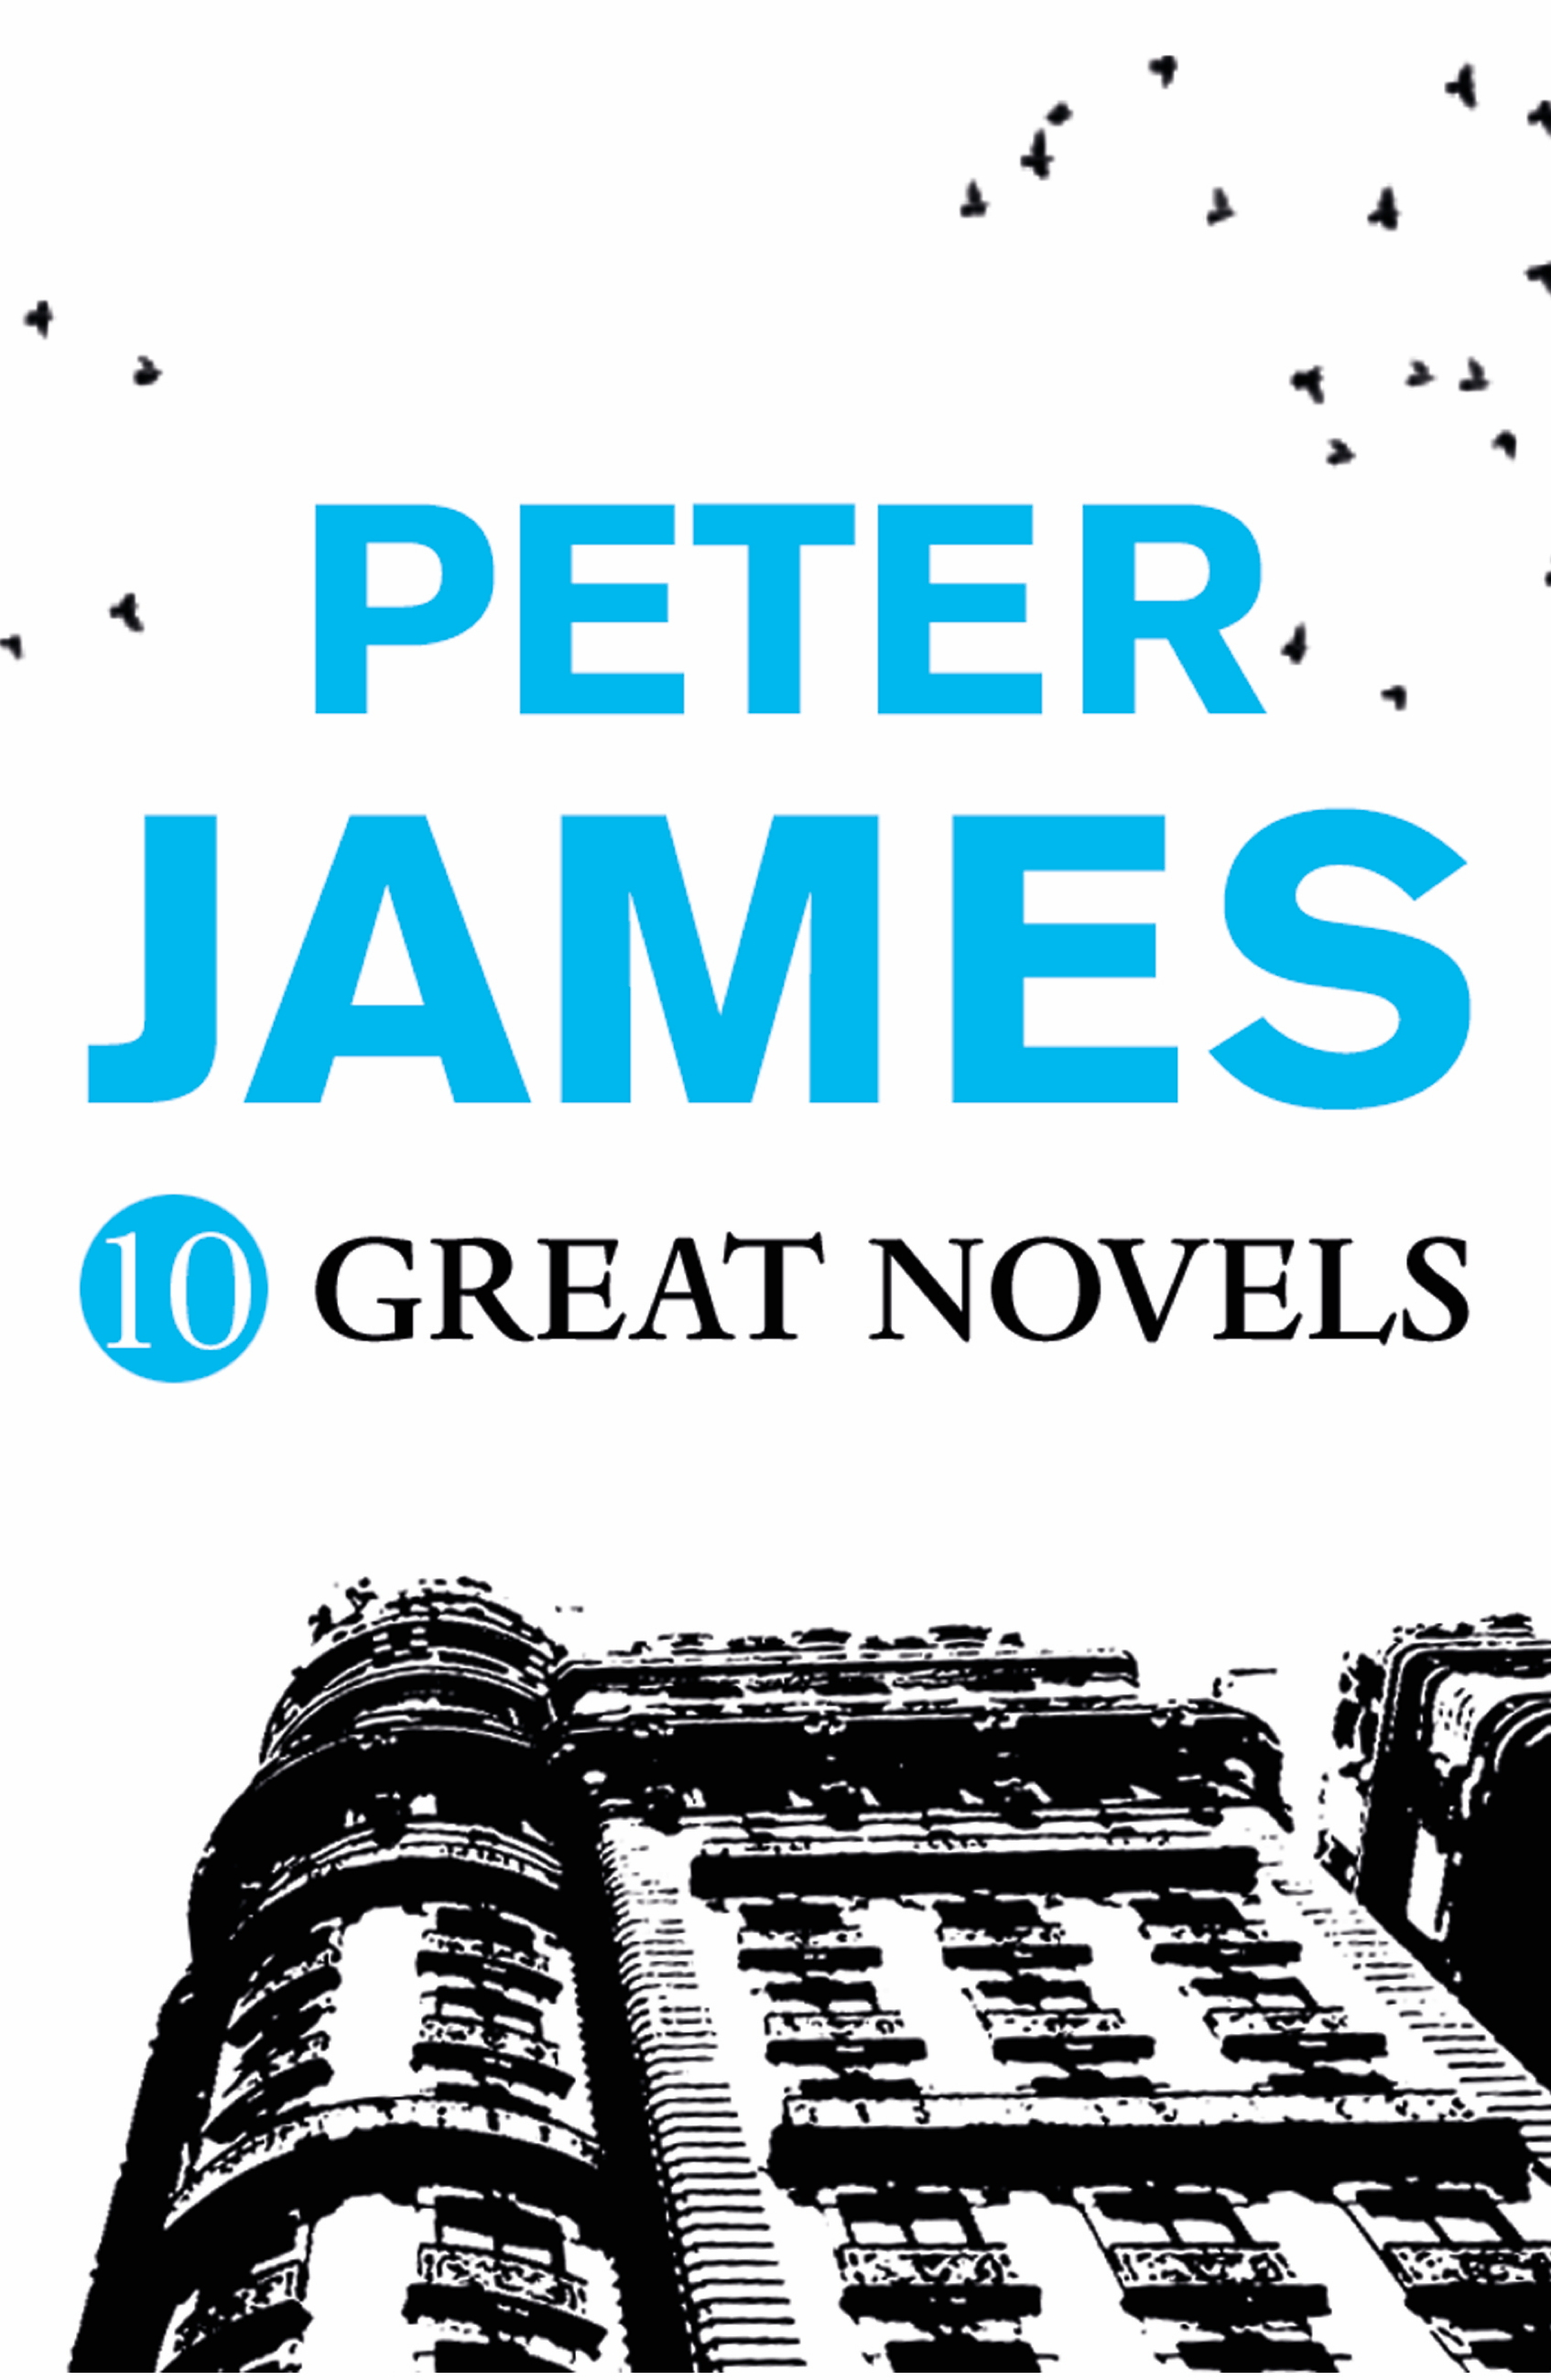 Peter James - 10 GREAT NOVELS